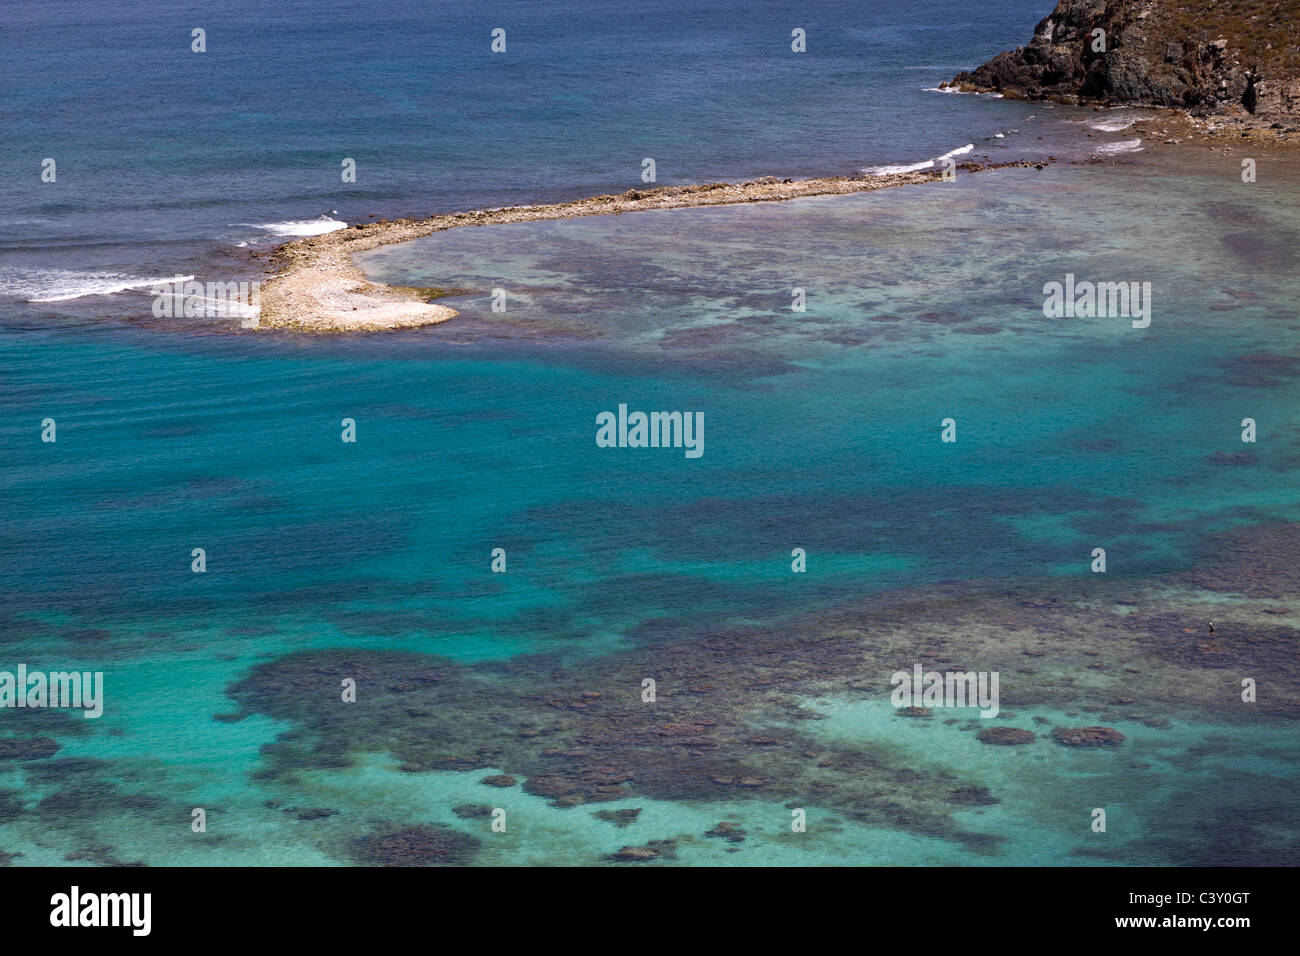 Coral reefs below clear turquoise water and sandbar protruding from rocky shore in Caribbean - Stock Image